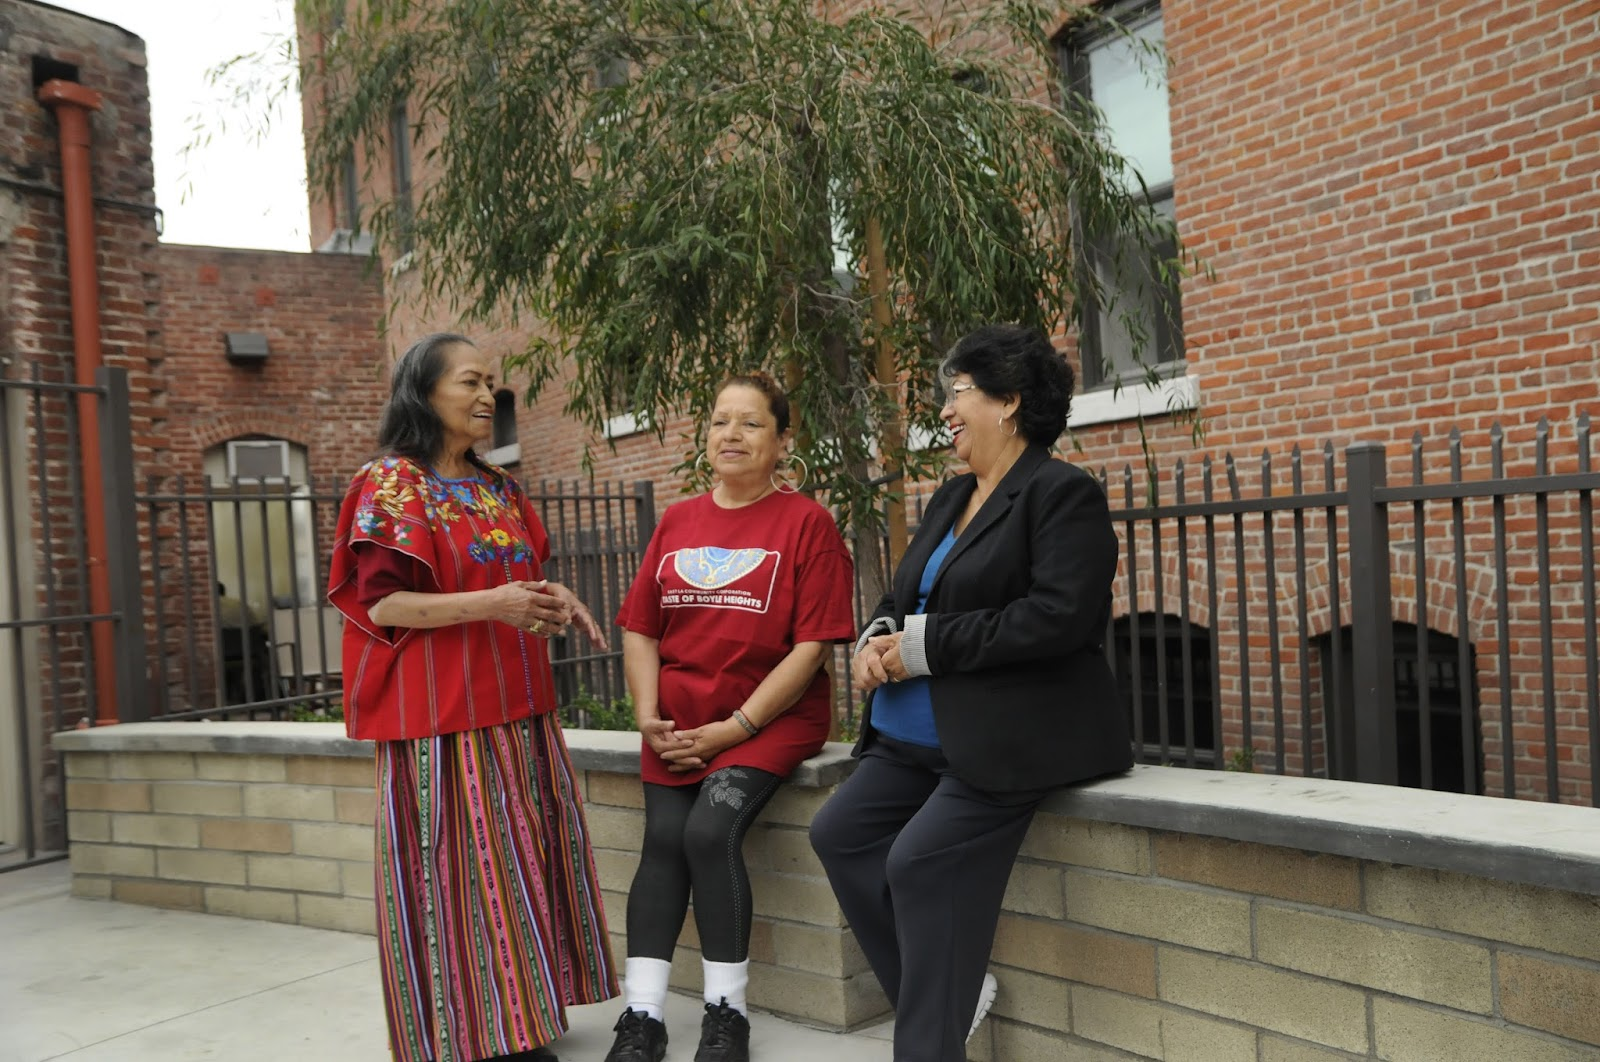 3 ladies in front of a brick building.